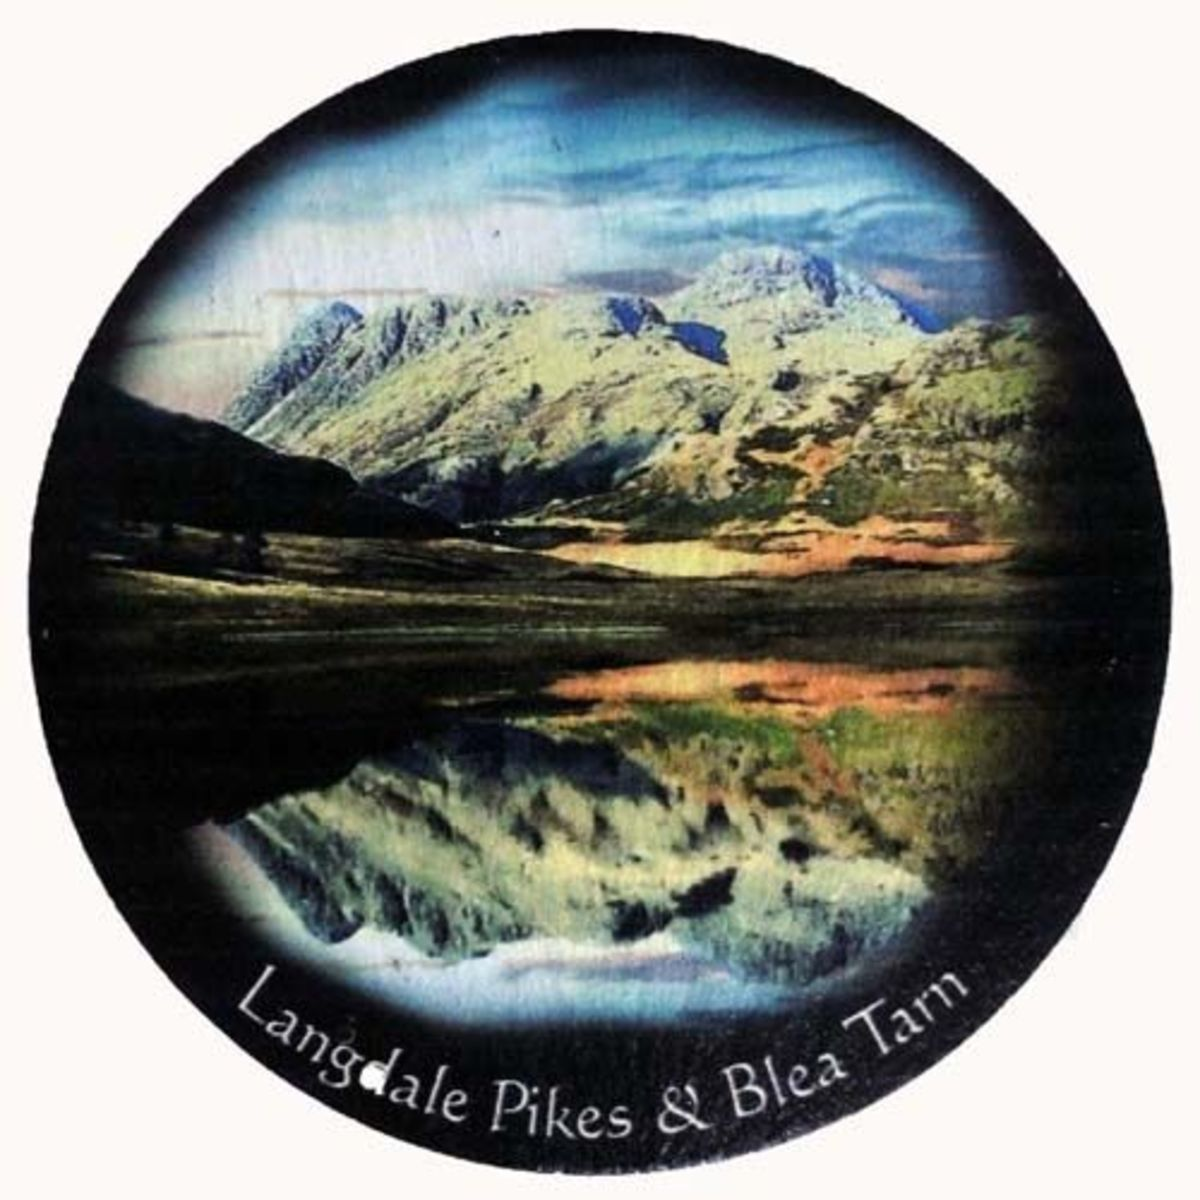 Slate coaster of Langdale Pikes and Blea Tarn in the Lake District, England.